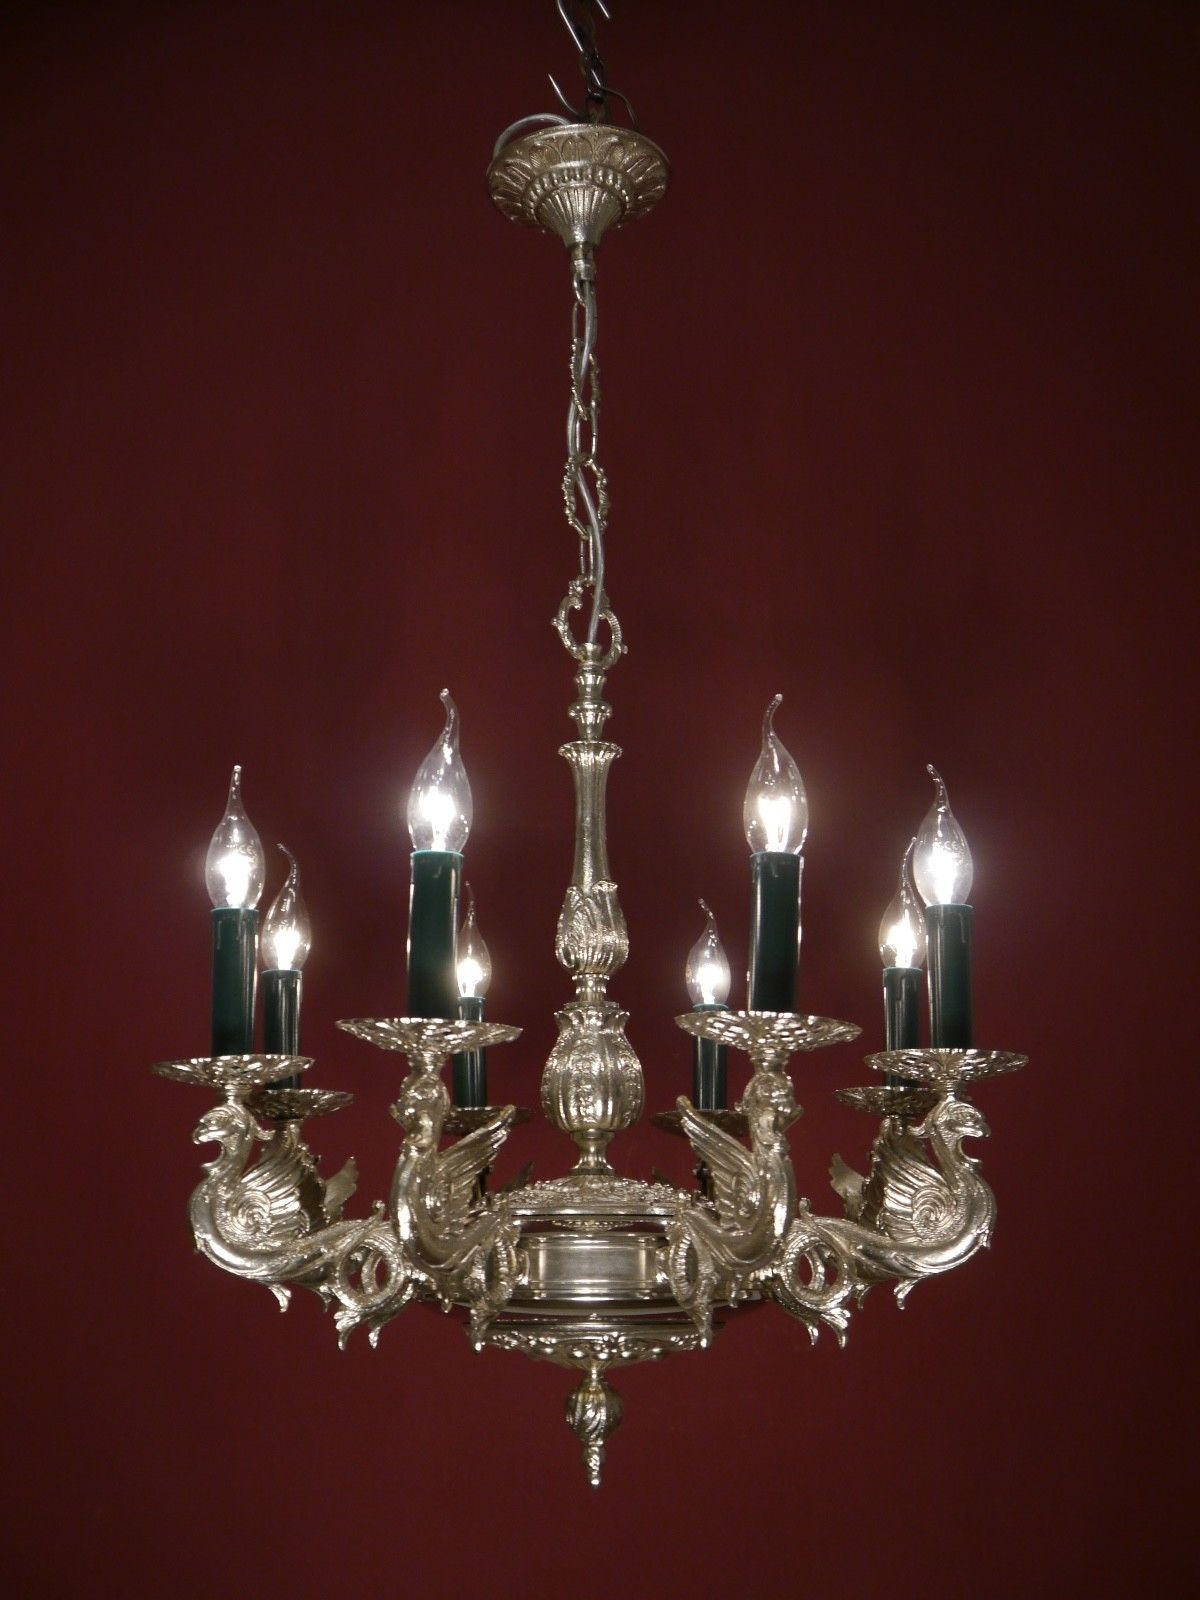 DRAGON NICKEL CHANDELIER SILVER GREEN CANDLE VINTAGE LAMP OLD